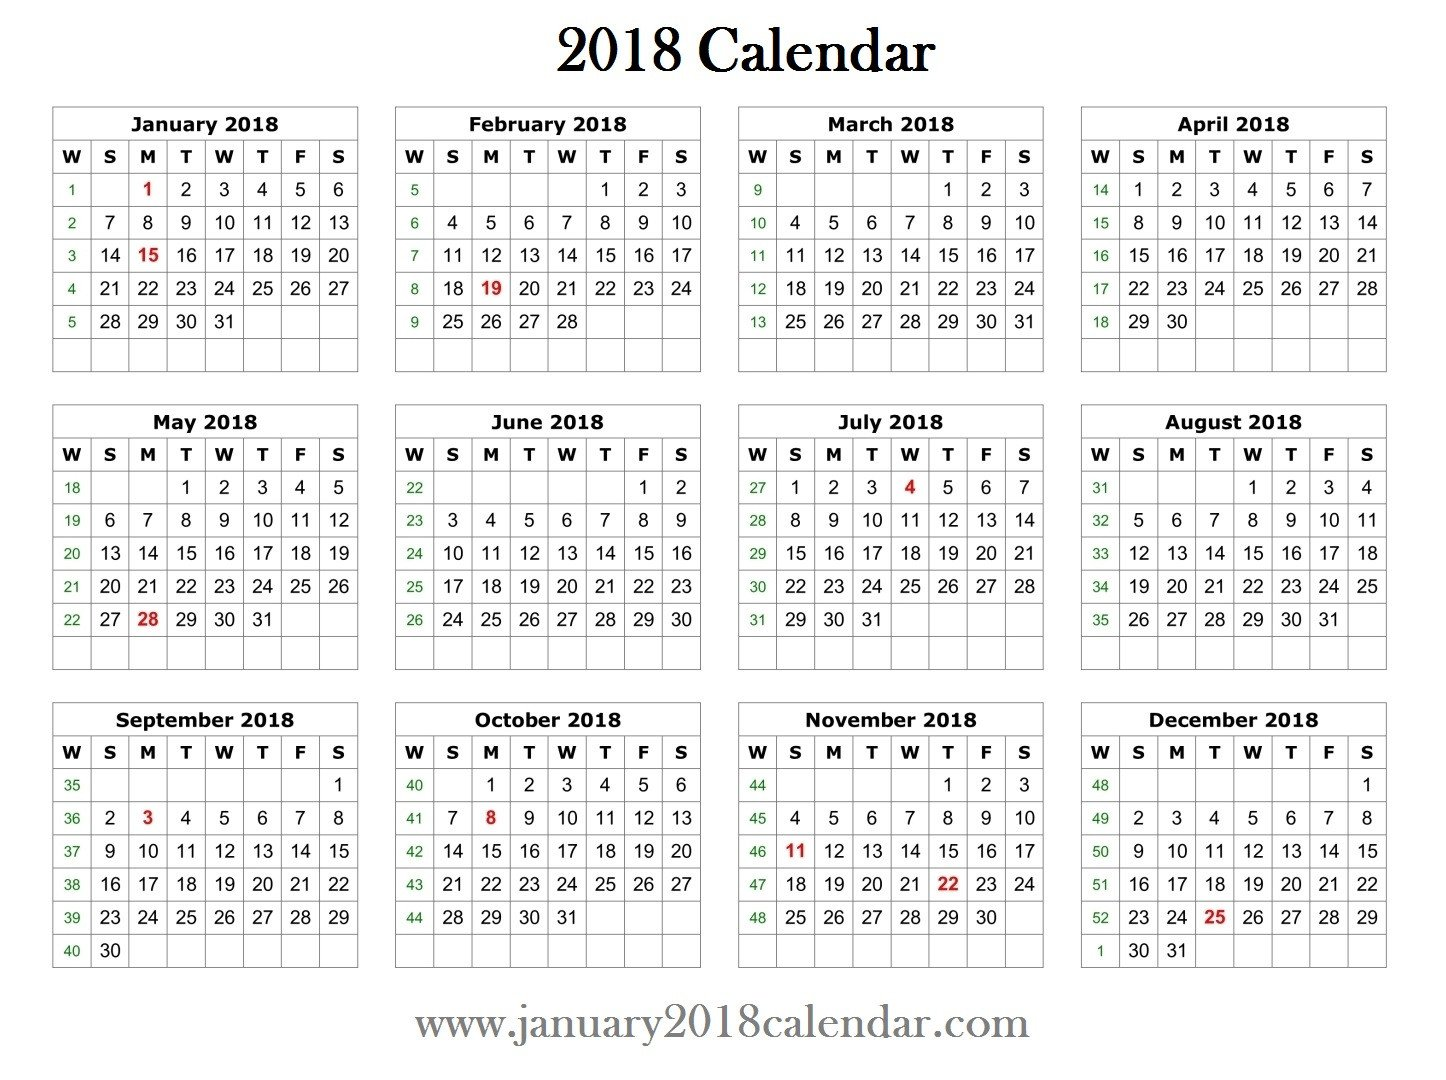 Calendar Template for Word 2018 Printable Word Calendar Template